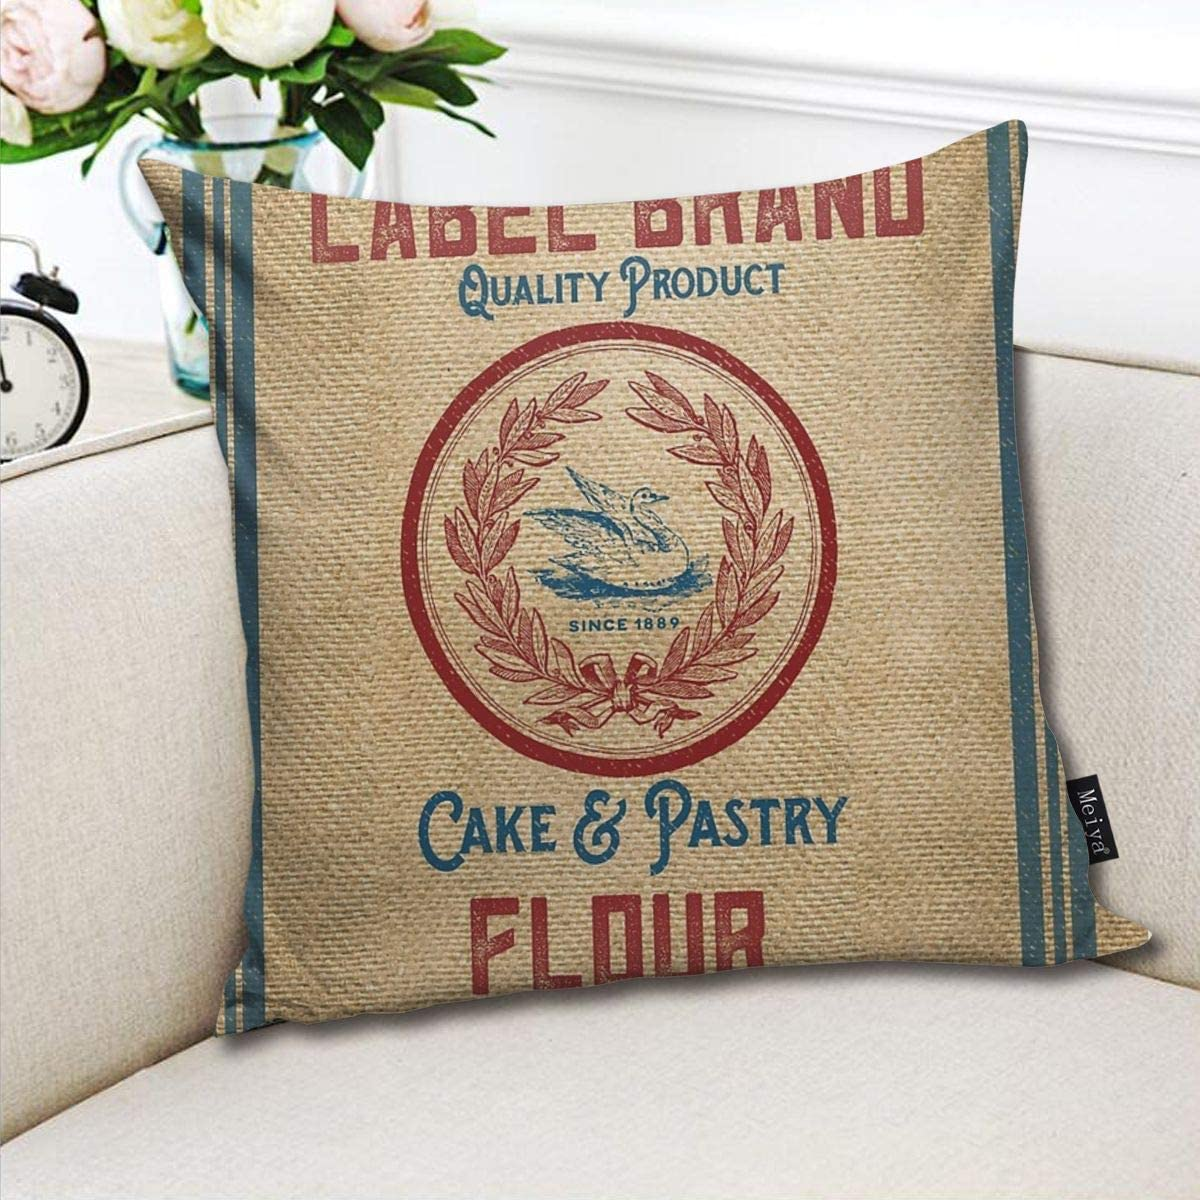 FamilyToy Throw Pillow Cover Case for Bedroom Couch Sofa Home Decor Vintage Vintage Burlap Like Flour Sack Pattern Square 18x18 Inches